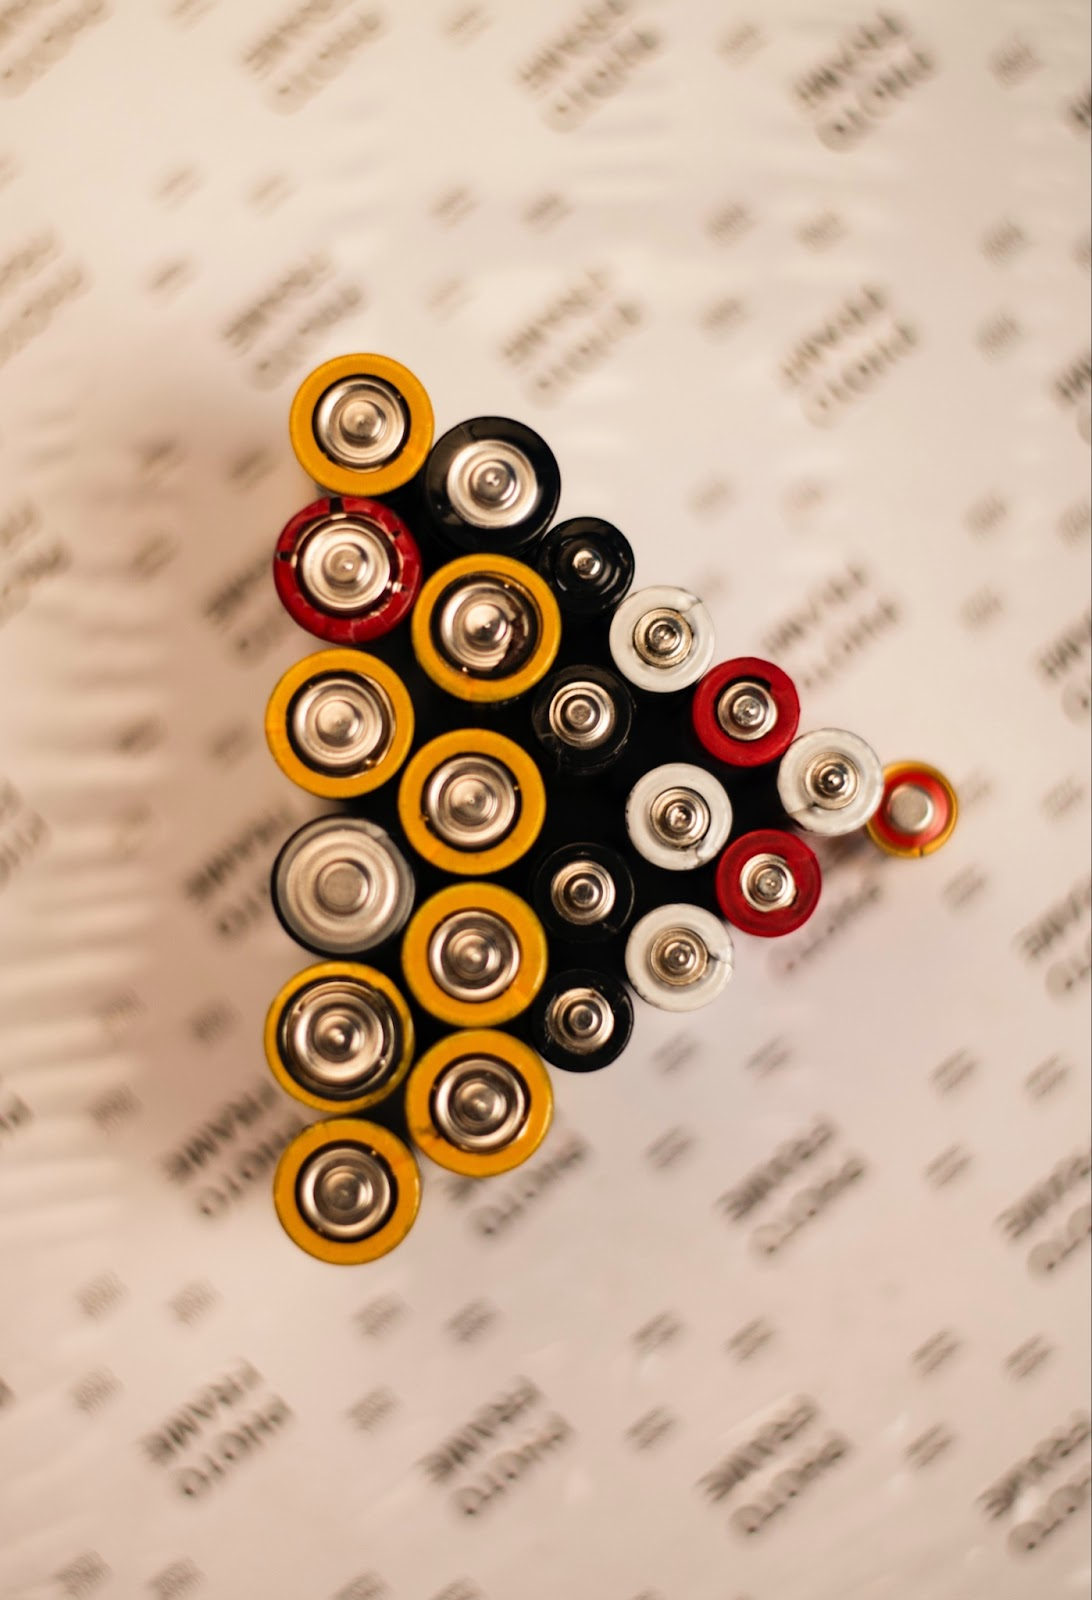 How to Dispose of Different Types of Batteries